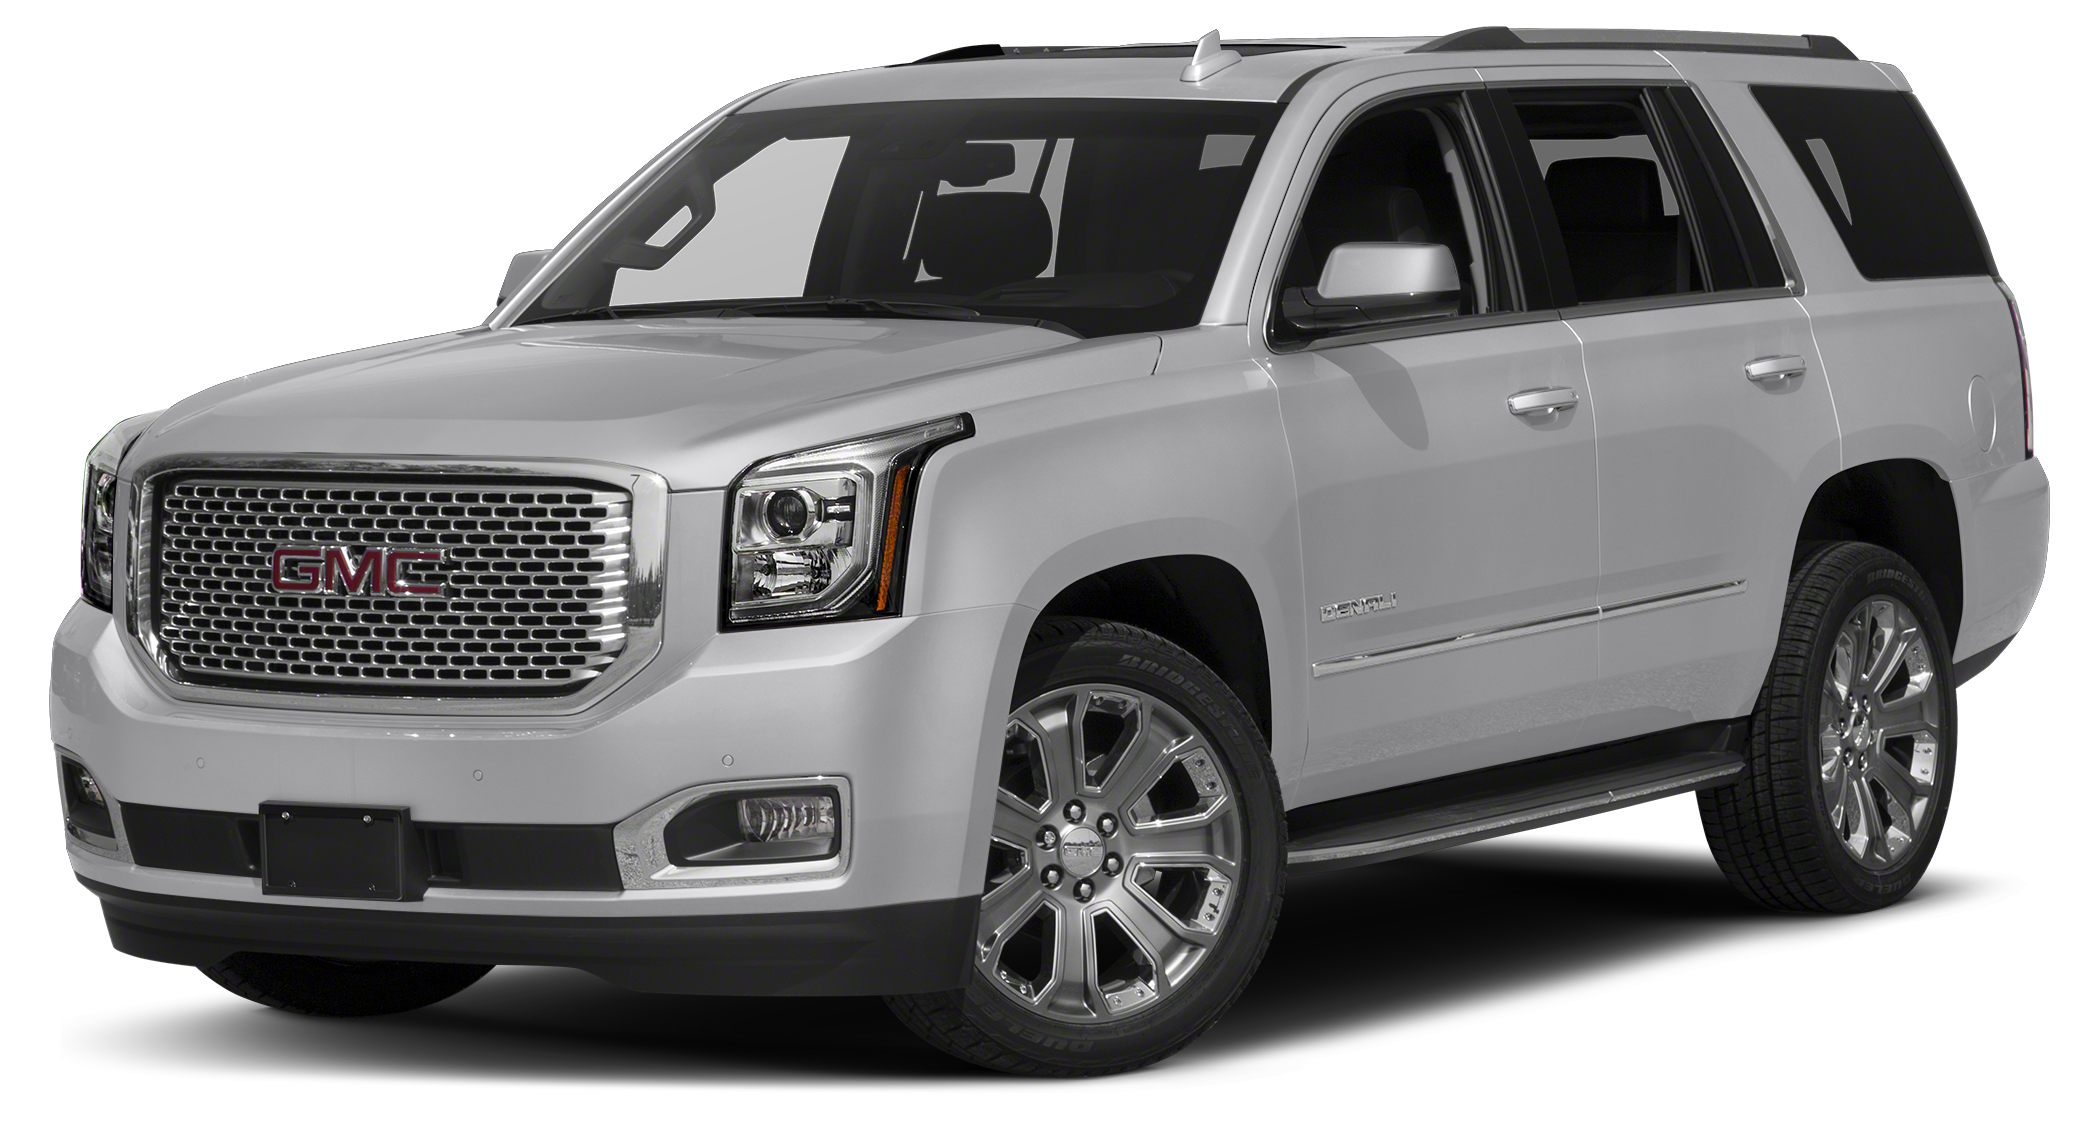 2018 GMC Yukon Denali This 2018 GMC Yukon Denali includes a backup sensor rear air conditioning